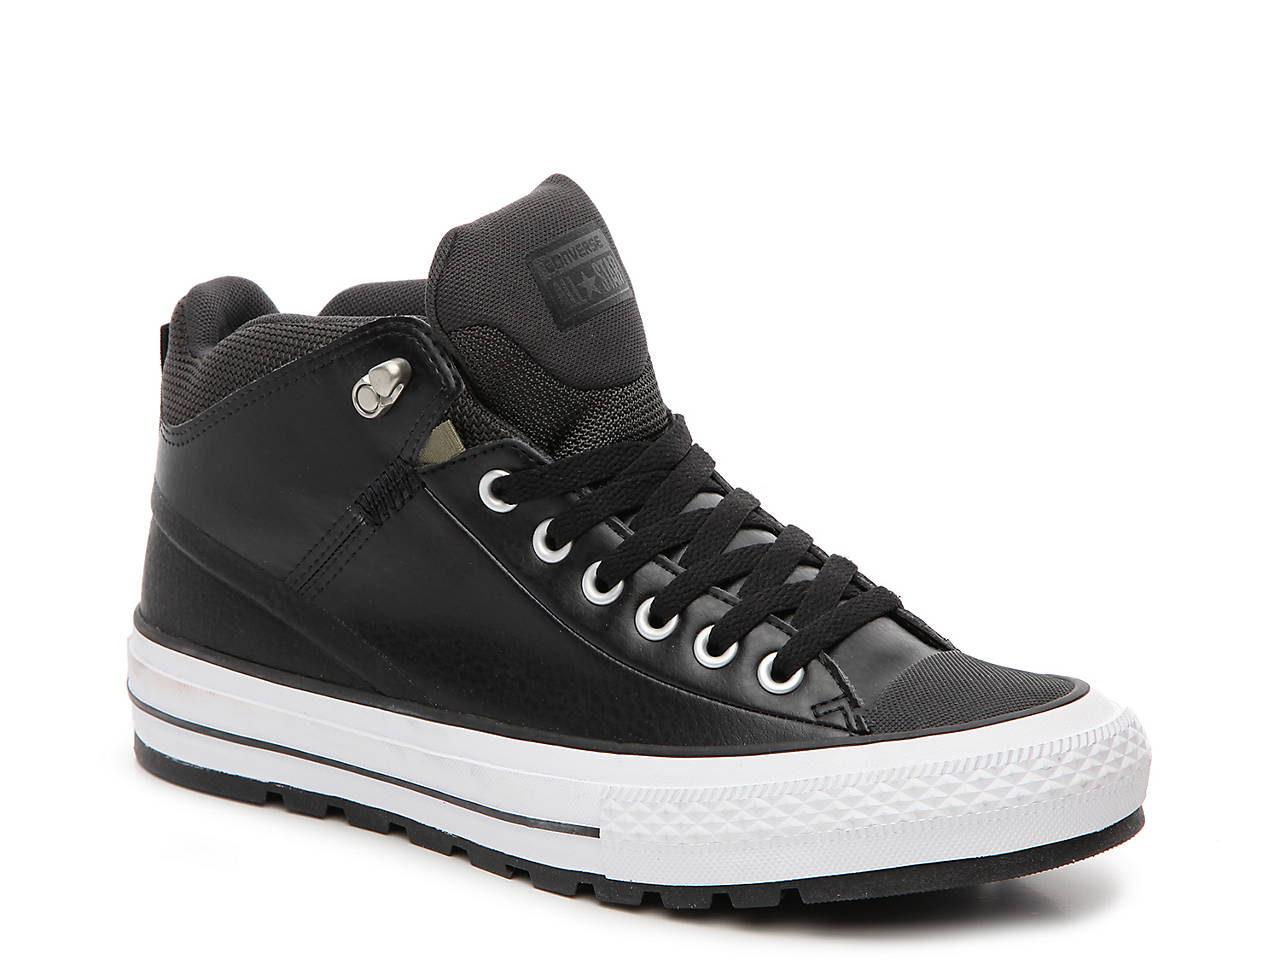 4a547146f0b5 Converse. Chuck Taylor All Star Hi Street High-Top Sneaker Boot - Men s